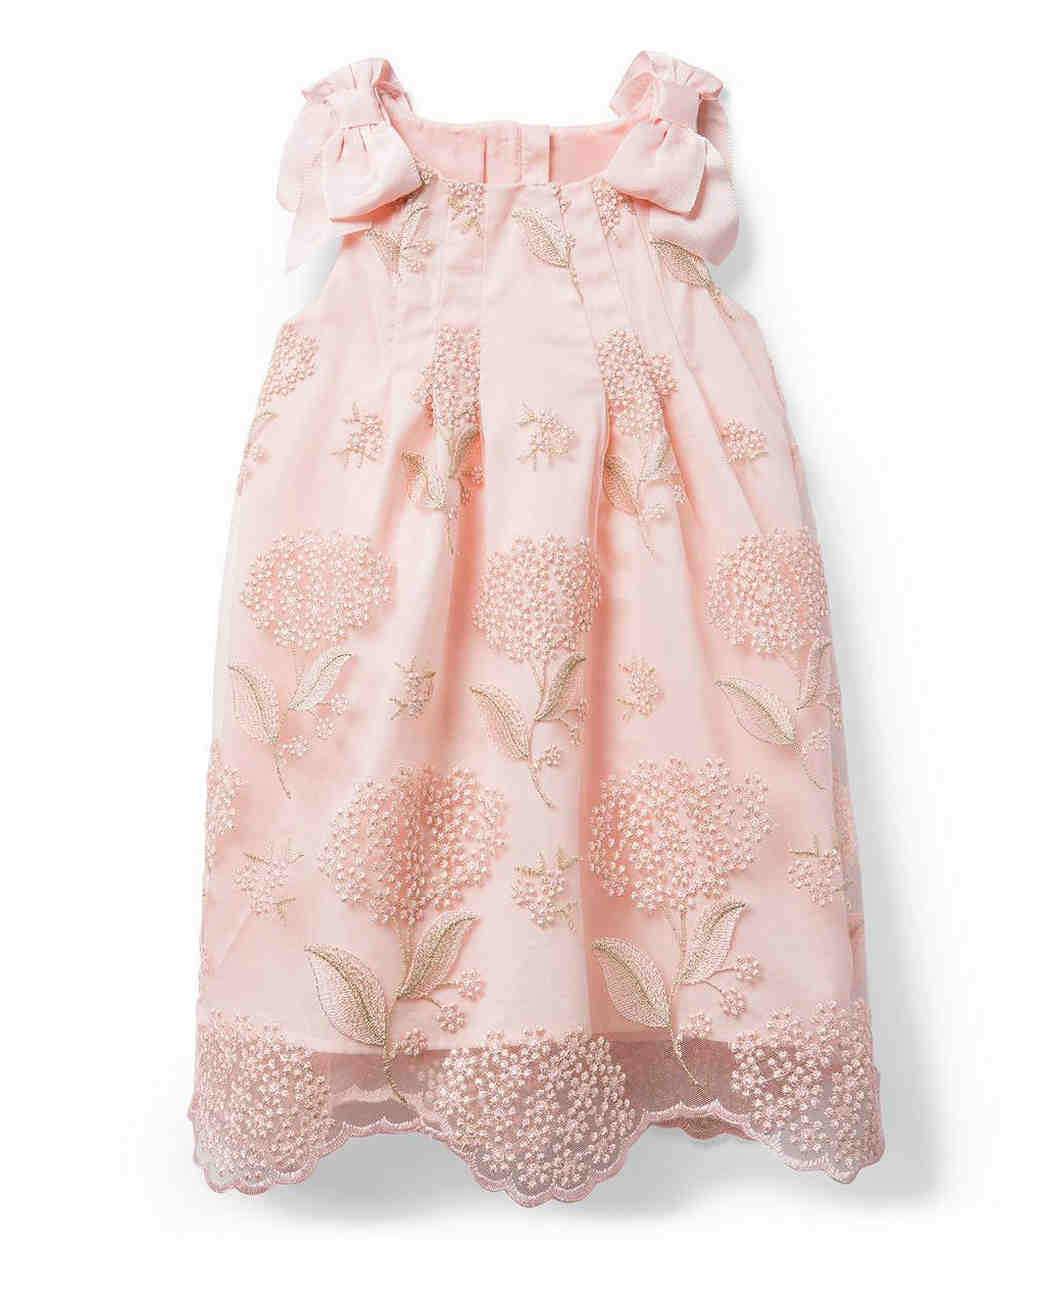 summer flower girl outfit pink embellished dress